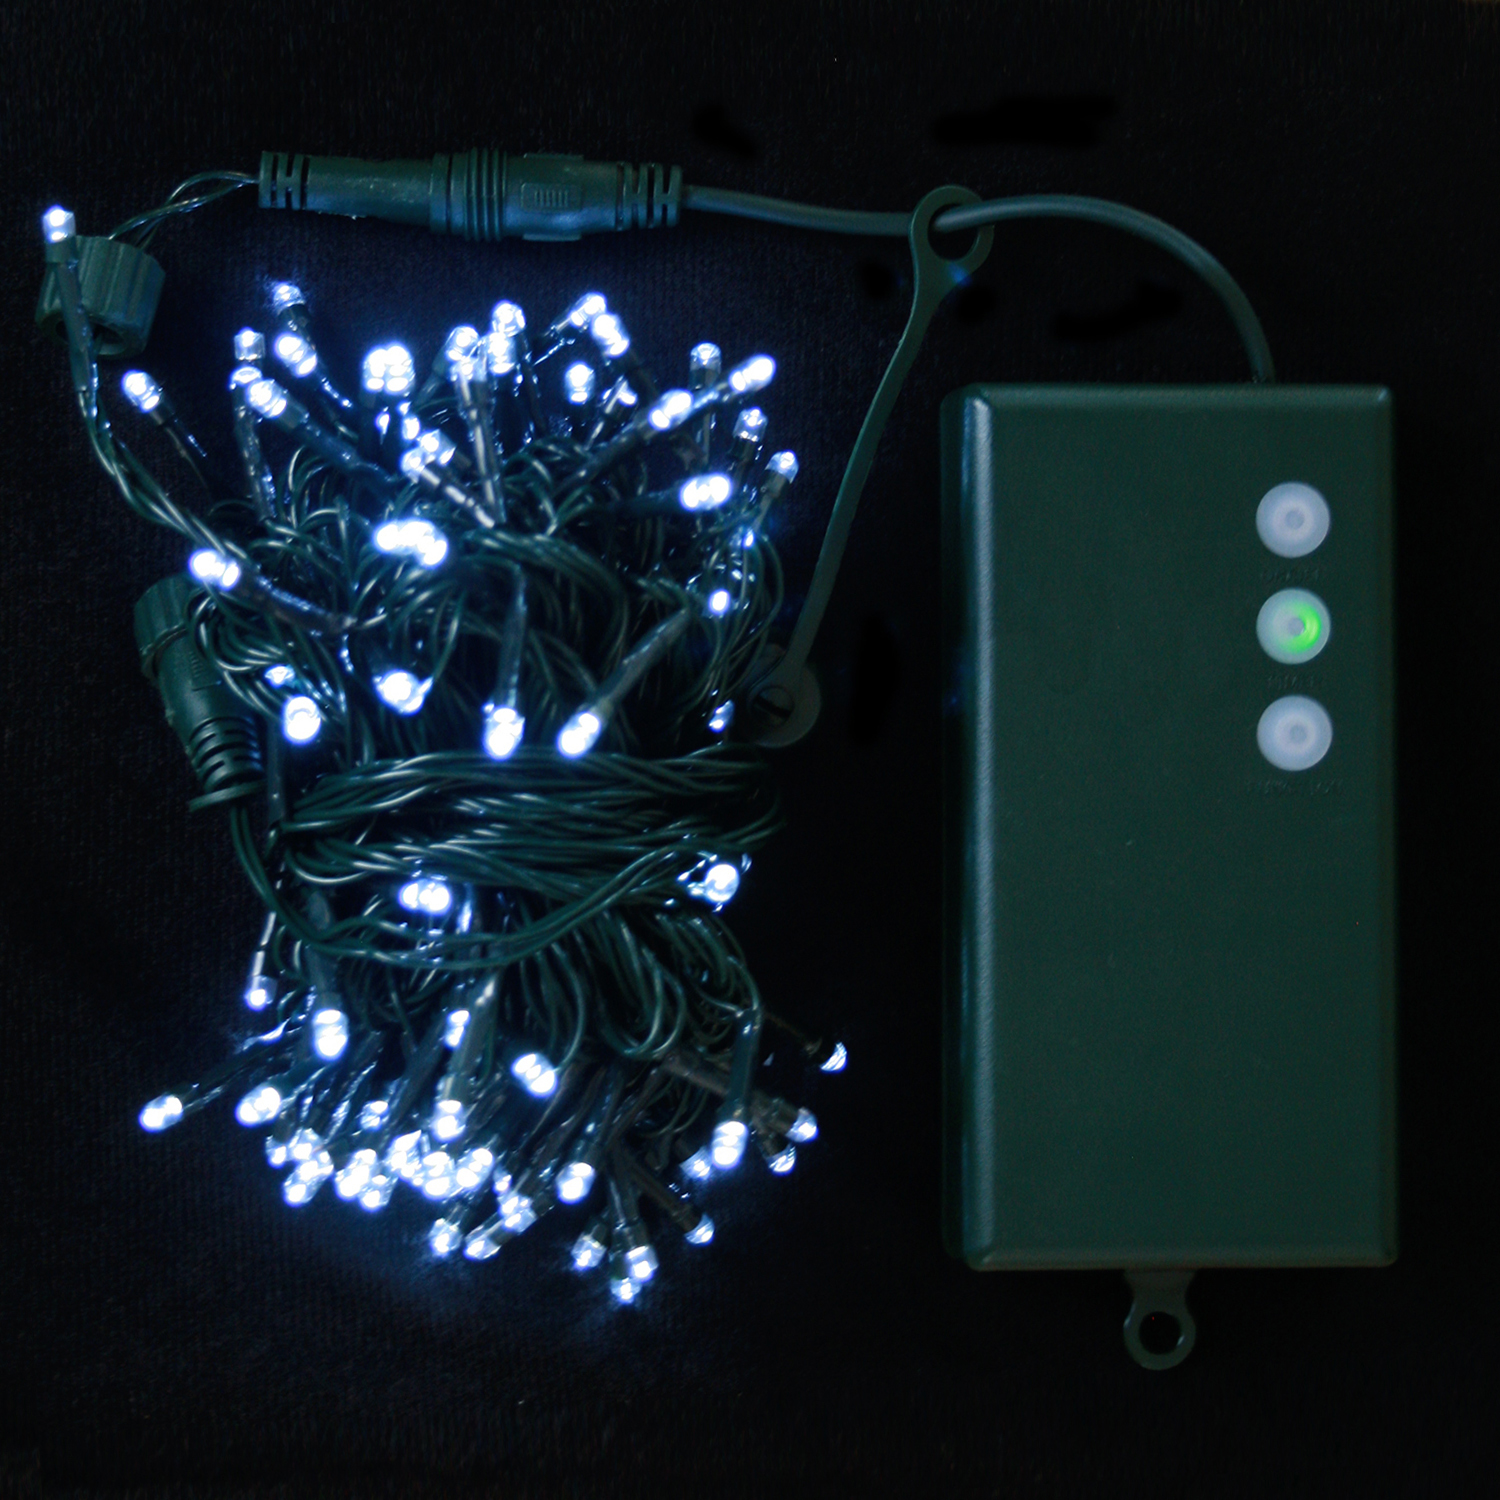 White String Christmas Lights Led : Lights.com String Lights Christmas Lights Cool White 100 LED Connectable Battery String Lights